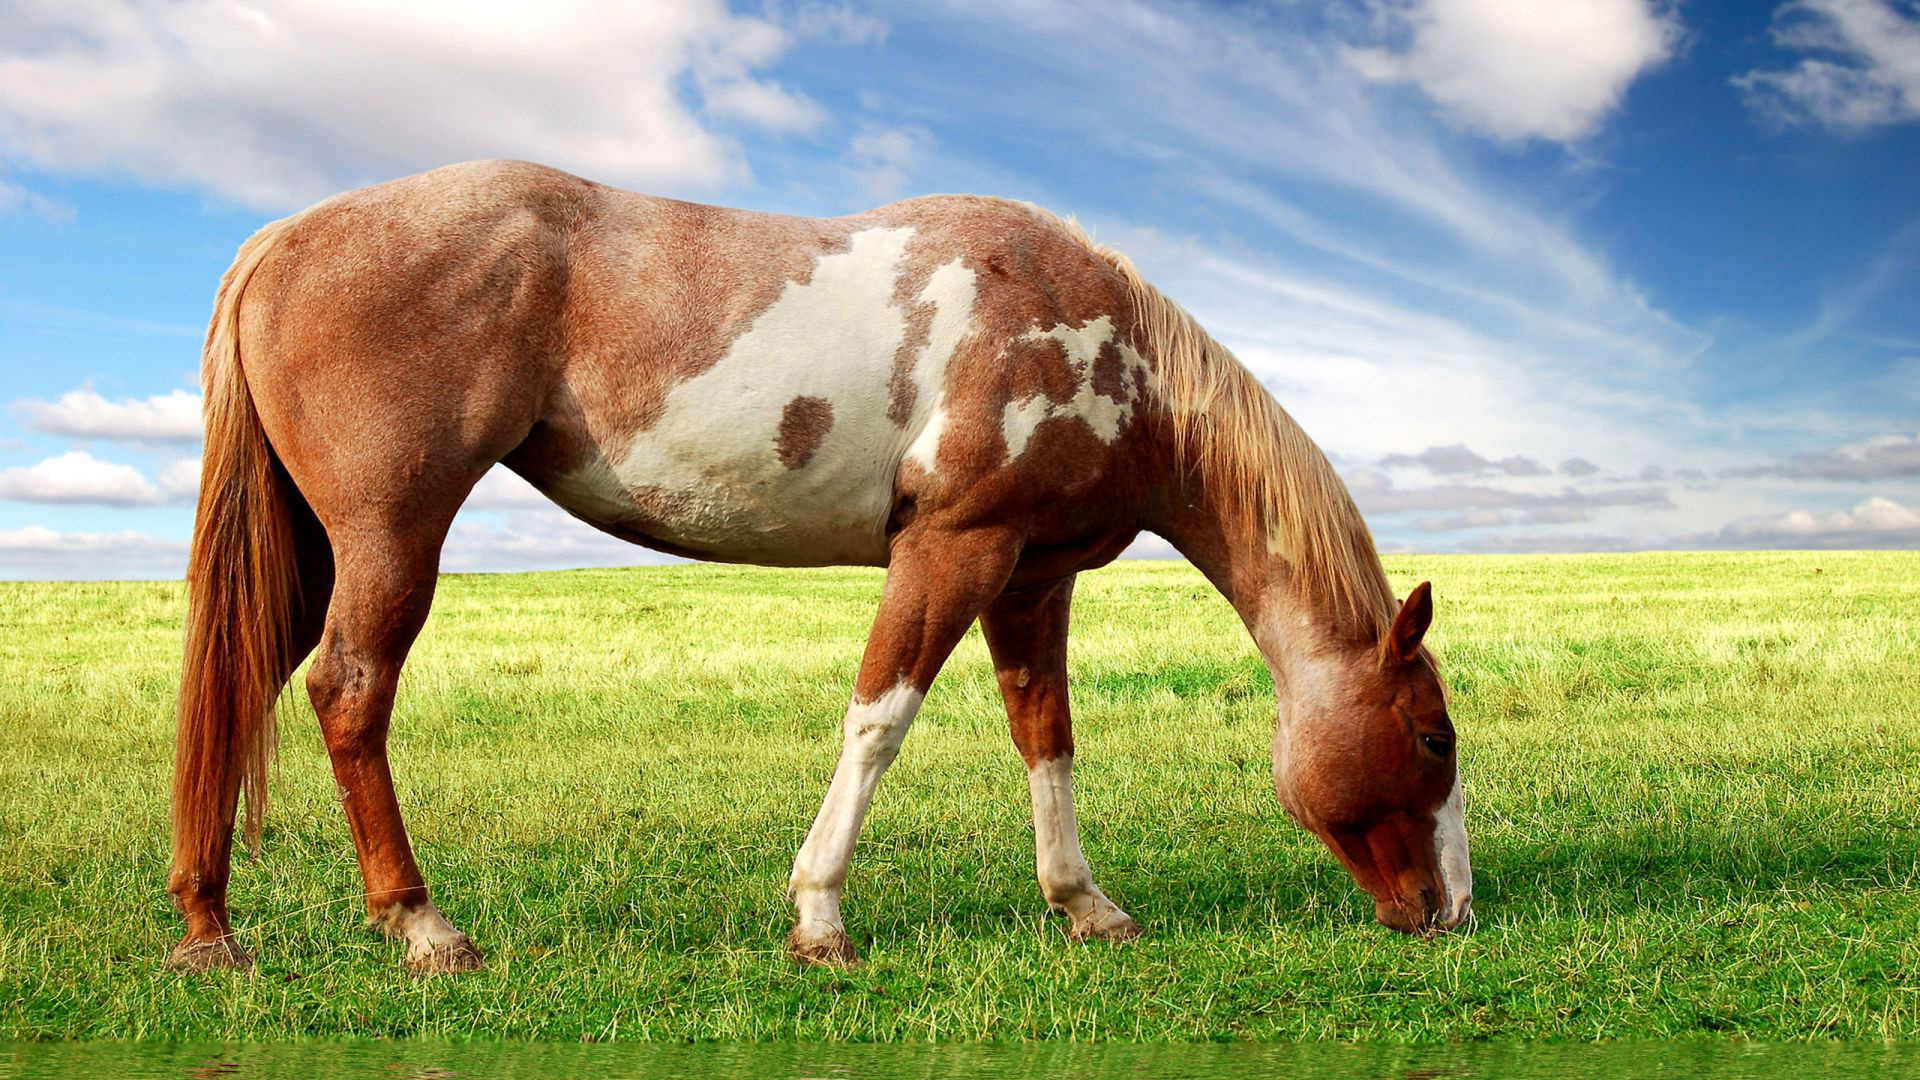 Horse wallpapers best wallpapers - Free horse backgrounds ...